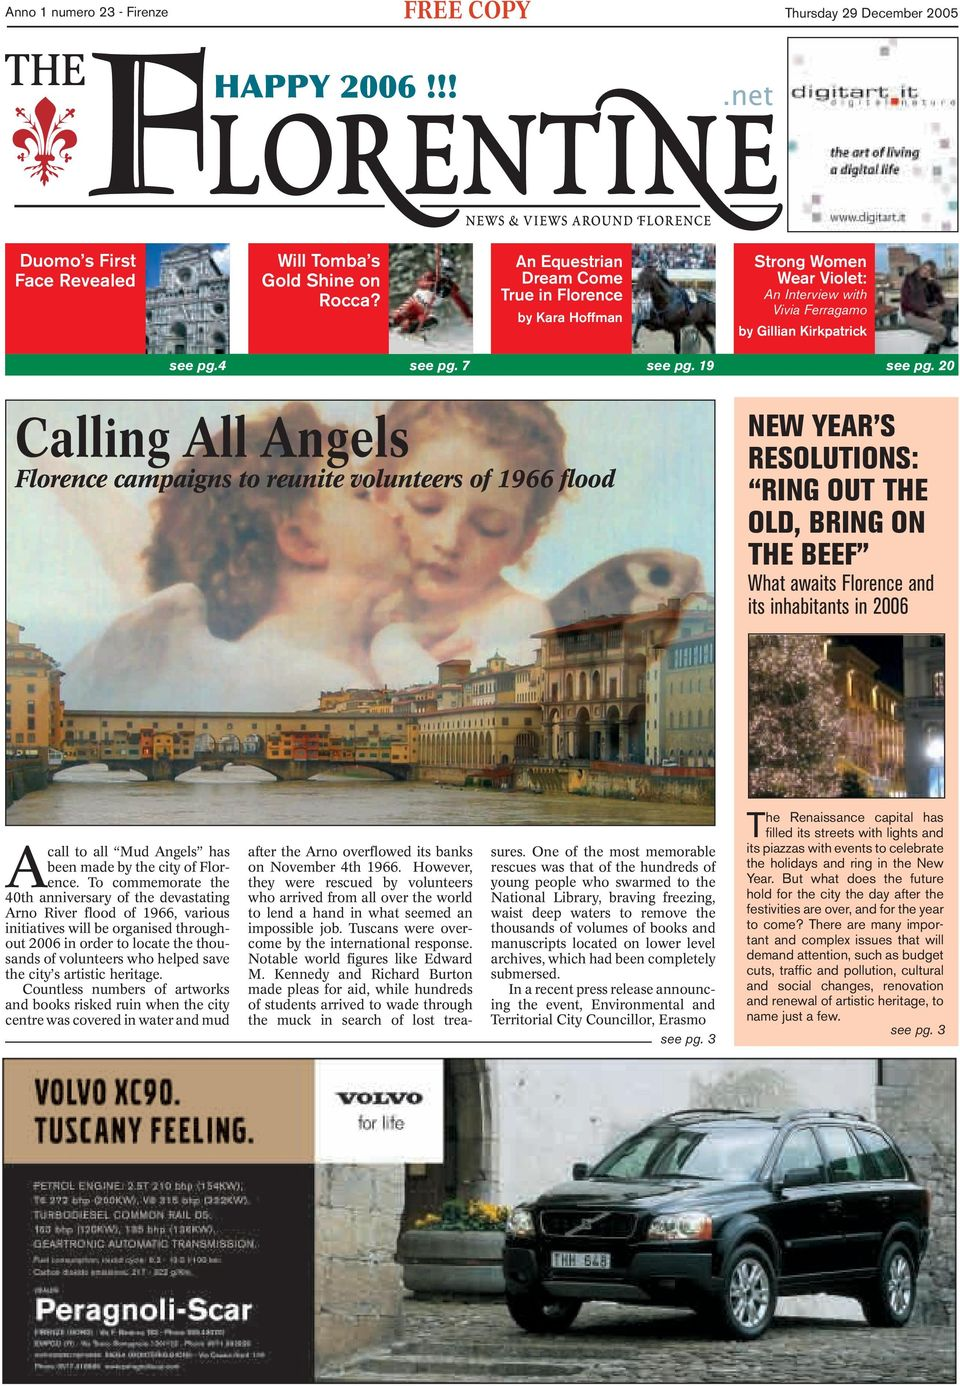 20 Calling All Angels Florence campaigns to reunite volunteers of 1966 flood NEW YEAR S RESOLUTIONS: RING OUT THE OLD, BRING ON THE BEEF What awaits Florence and its inhabitants in 2006 A call to all